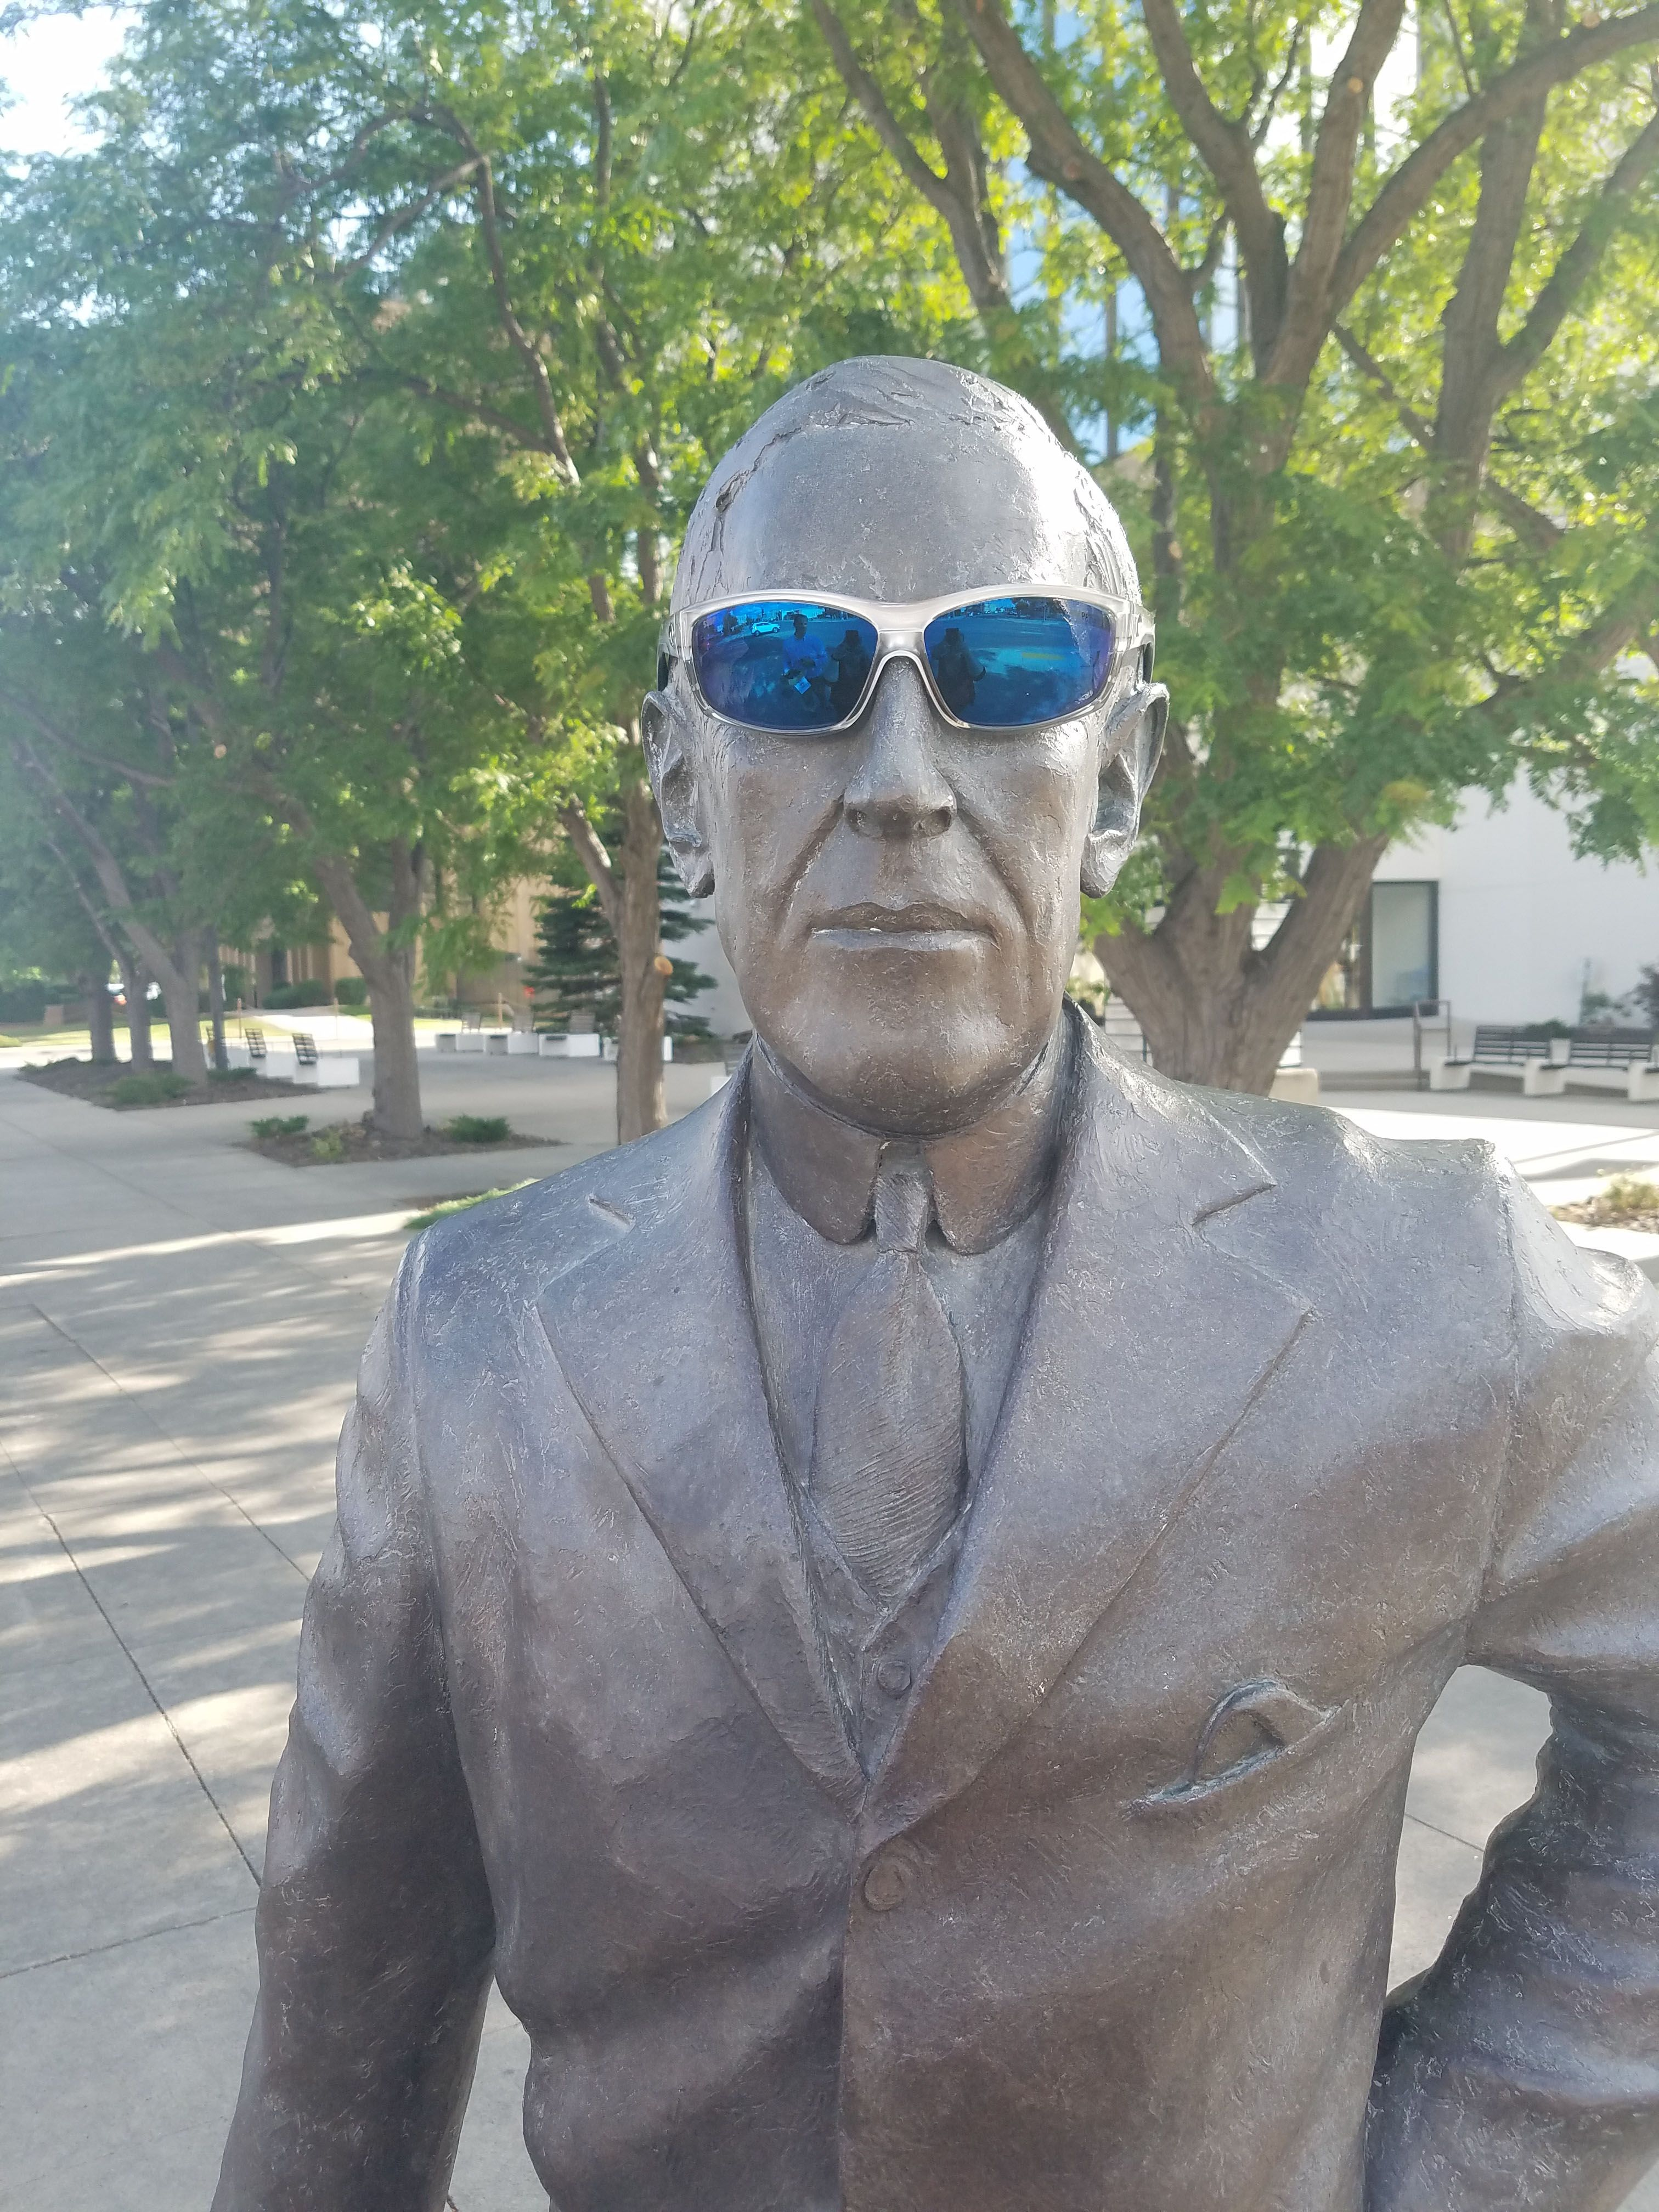 662191bbb5 I would have been a more memorable president if I had worn Costa Sunglasses....  Woodrow Wilson wearing… www.facebook.com InfinityEyeCarePC